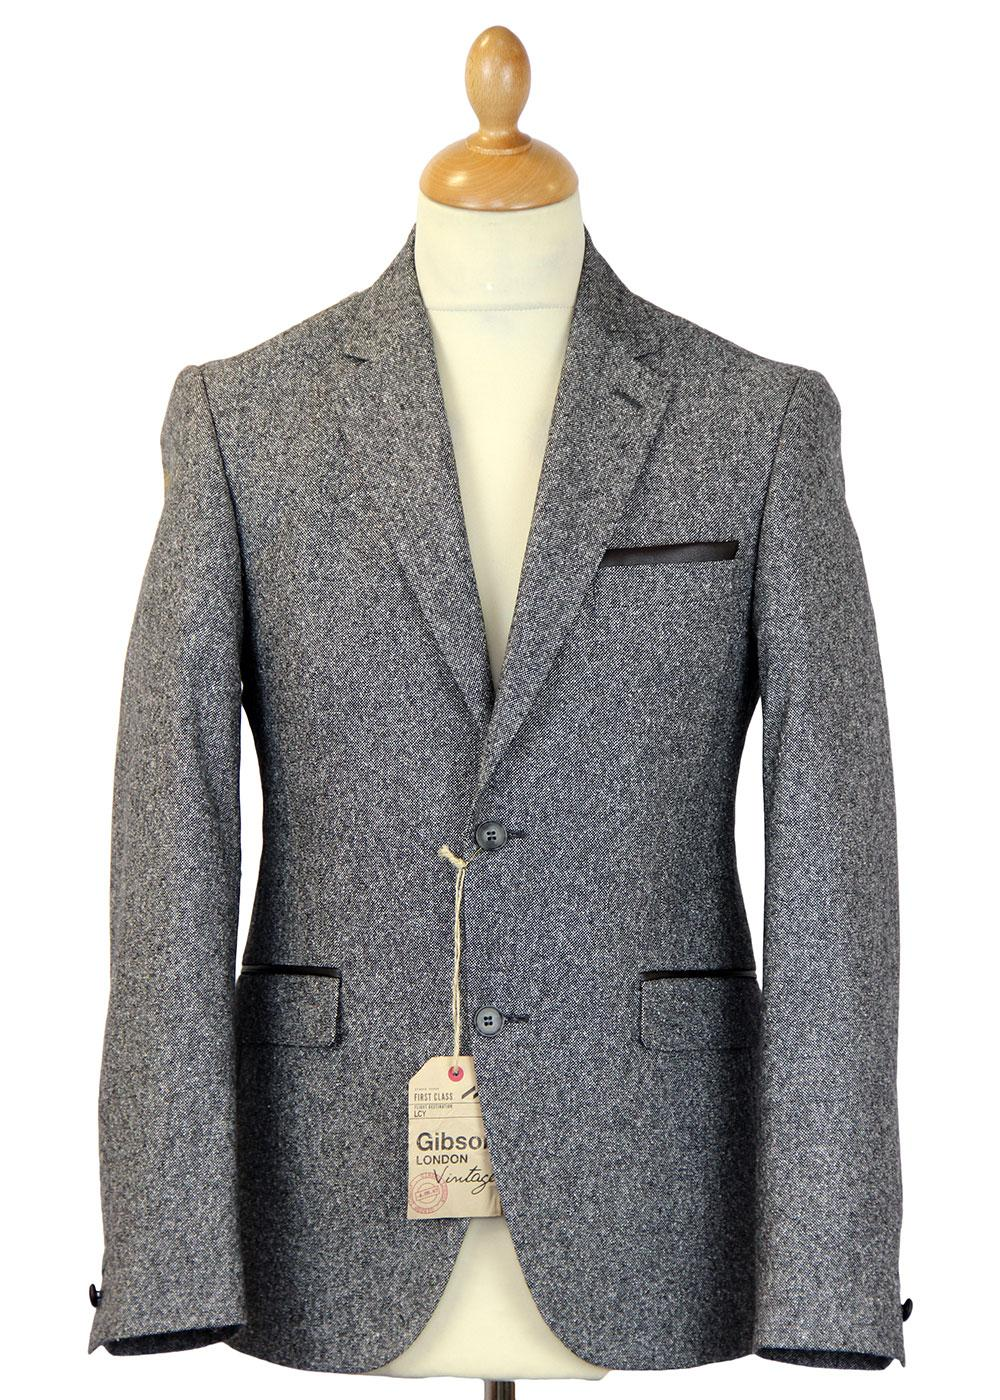 GIBSON LONDON Retro Mod Grey Donegal Suit Jacket